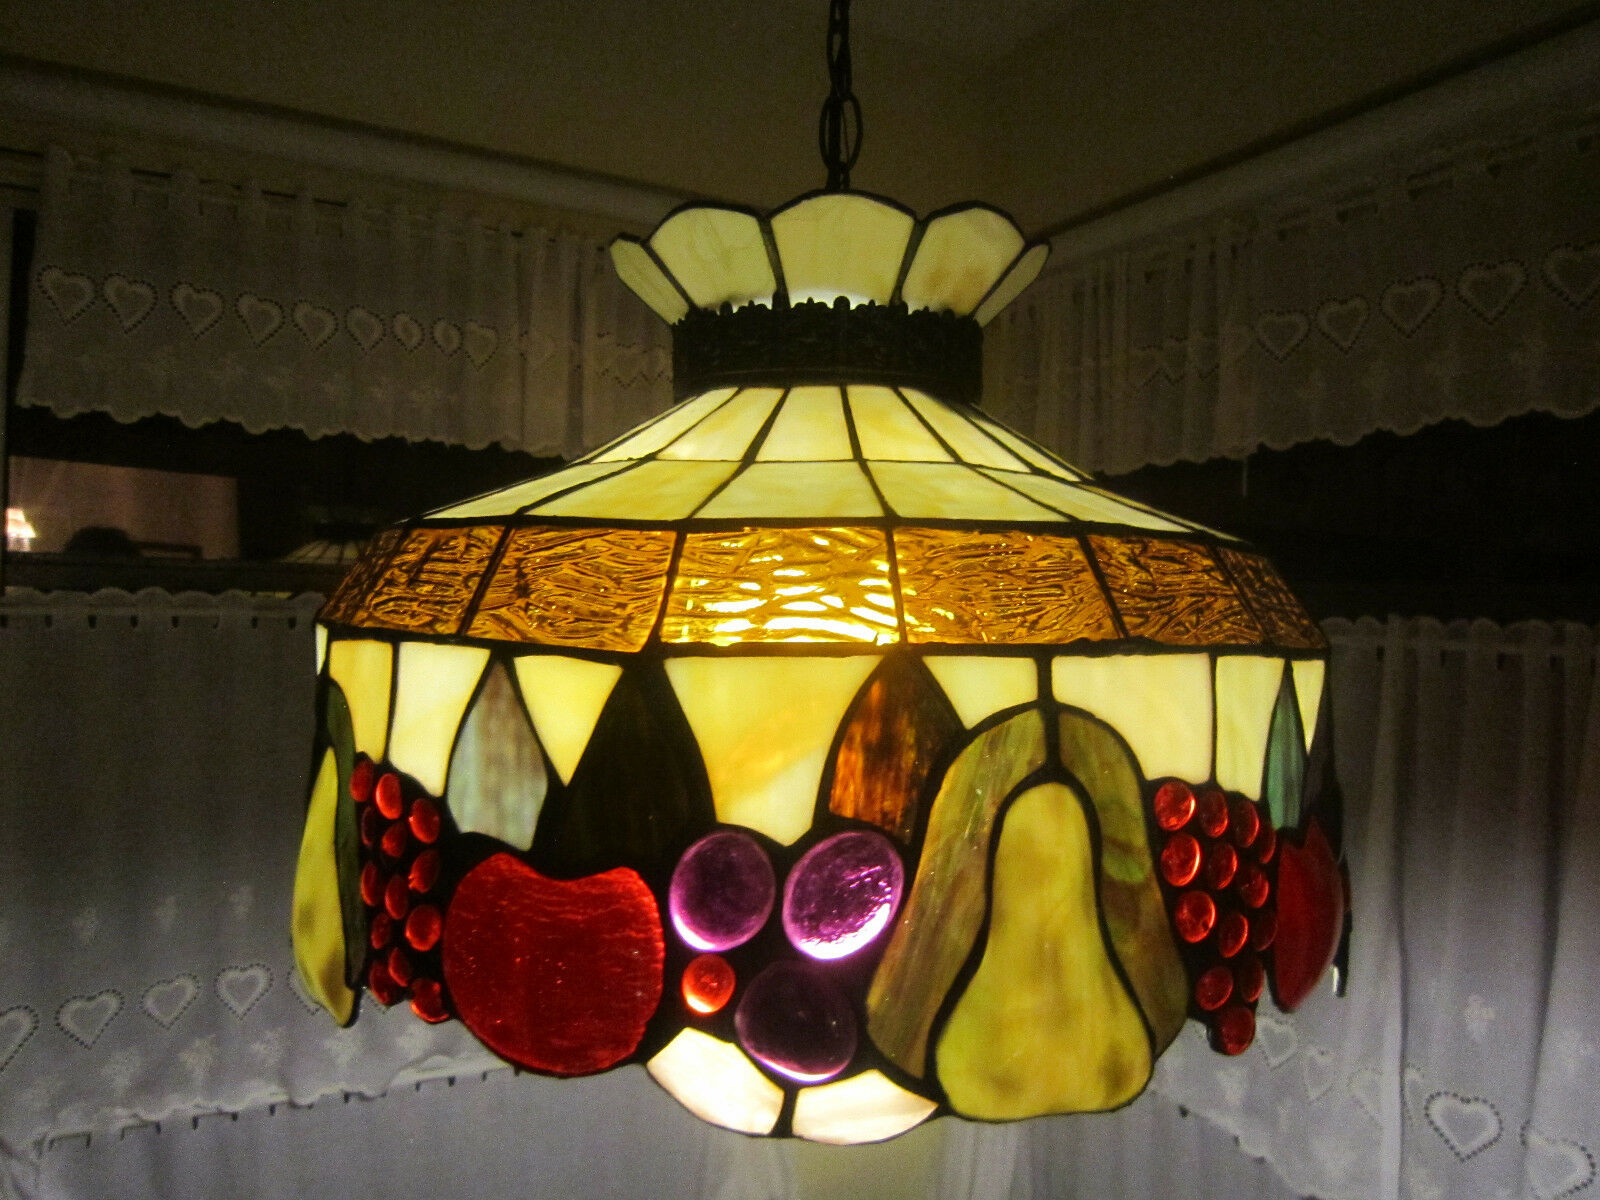 Vintage Tiffany Style Stained Fruit Pendant Light Fixture 16 Widt Chandelier For Sale Online